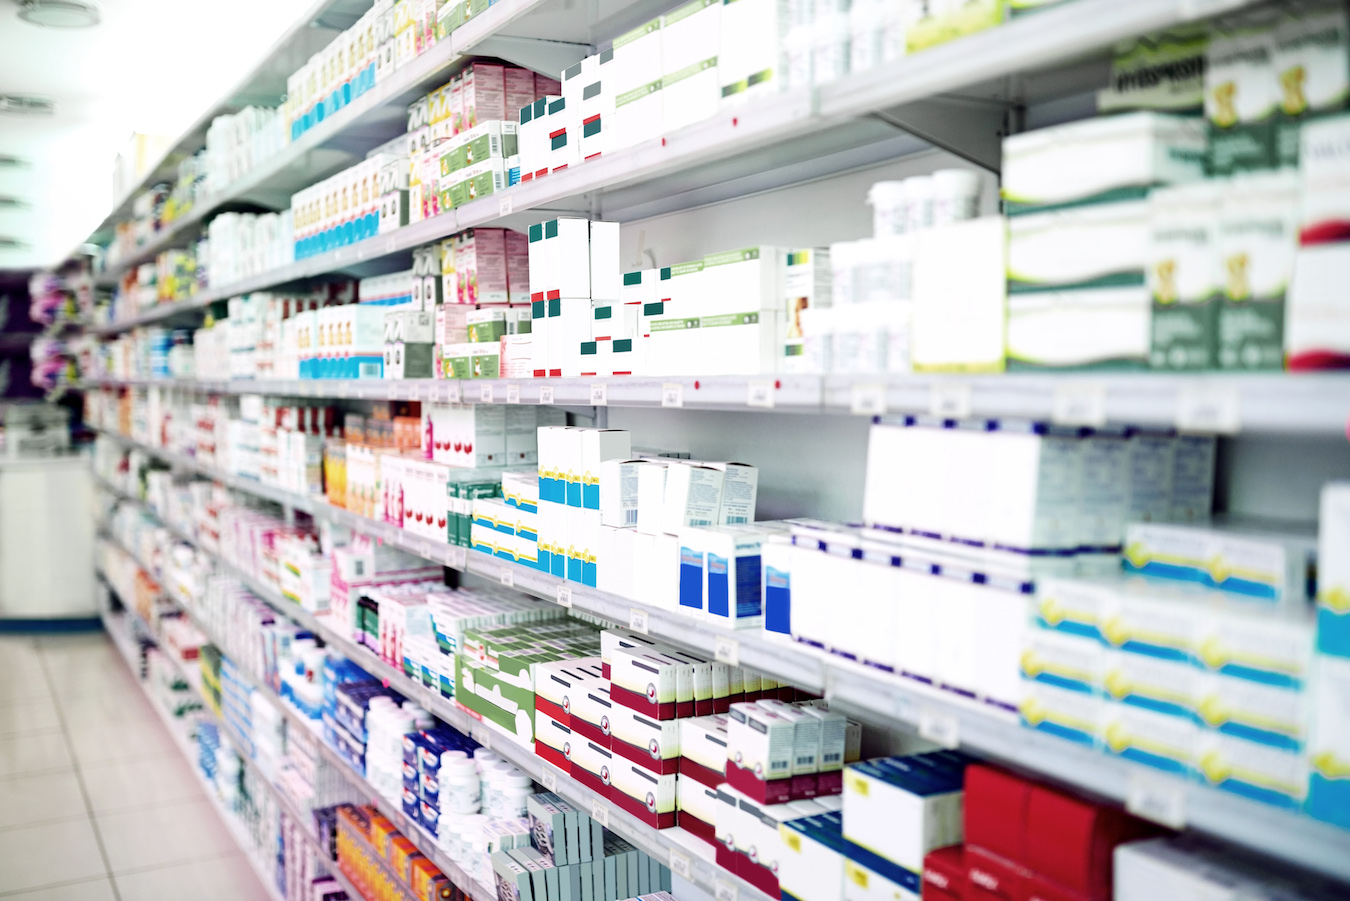 Pharmacies face additional audit burdens that threaten their existence